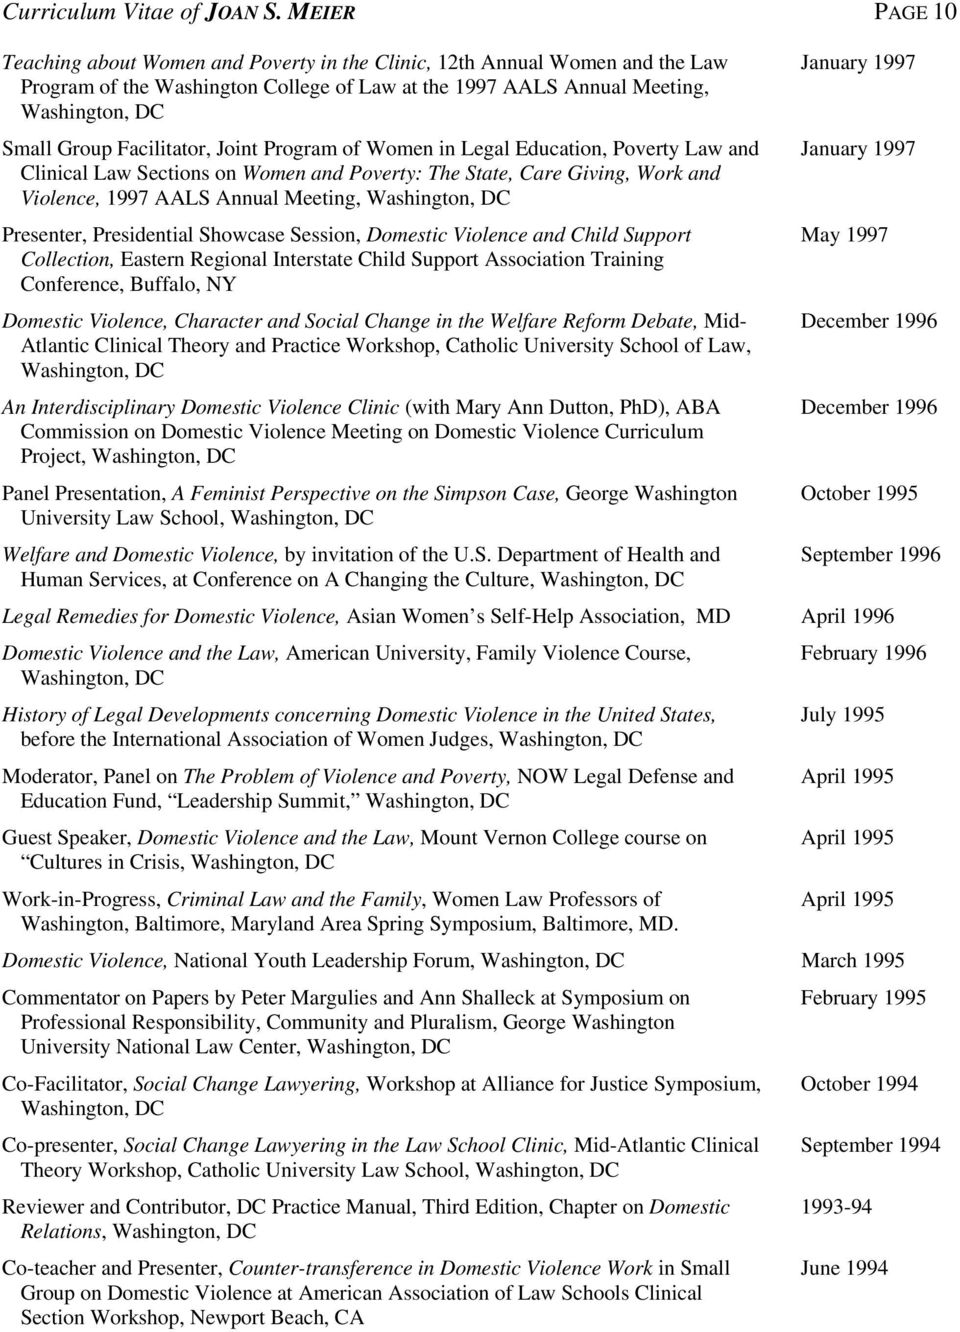 Program of Women in Legal Education, Poverty Law and Clinical Law Sections on Women and Poverty: The State, Care Giving, Work and Violence, 1997 AALS Annual Meeting, Presenter, Presidential Showcase